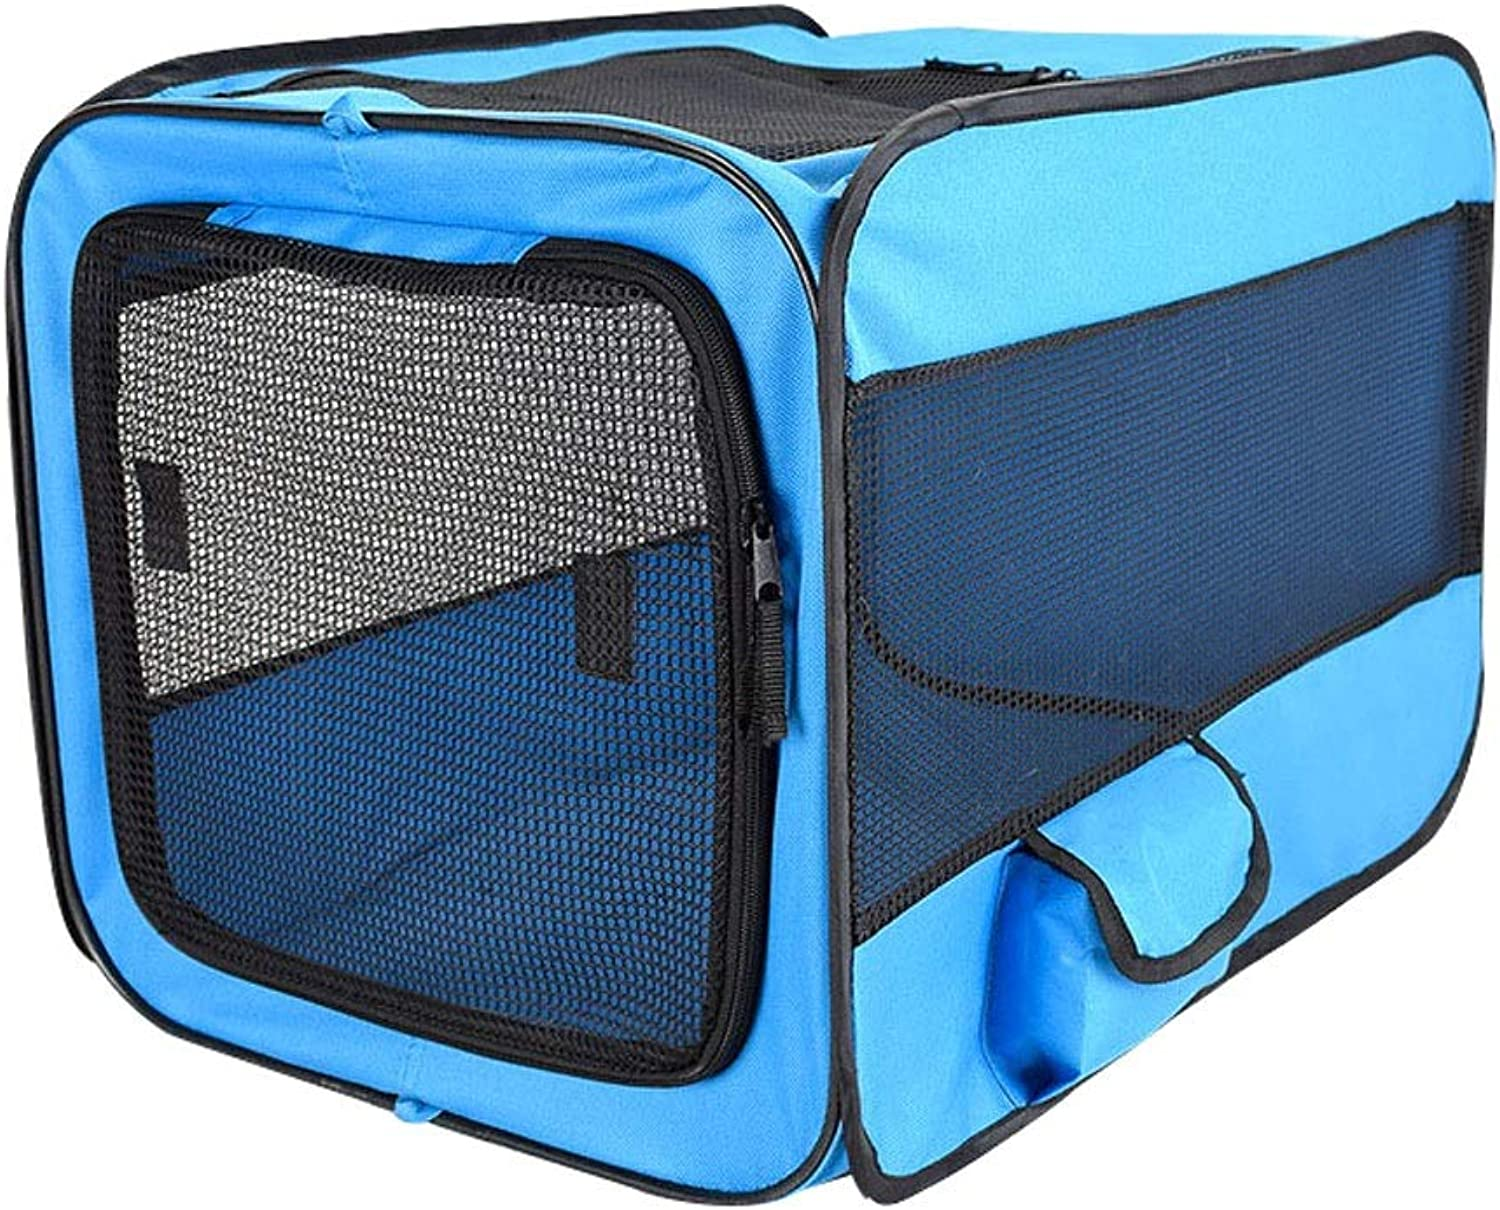 Lovingroy999 Pet Carrier Crates Portable Expandable Soft Sided Kennel Car Seat Animal Travel Bag Carrier with Mesh Top Pop Up Cage for Dogs and Cats (Size   M)